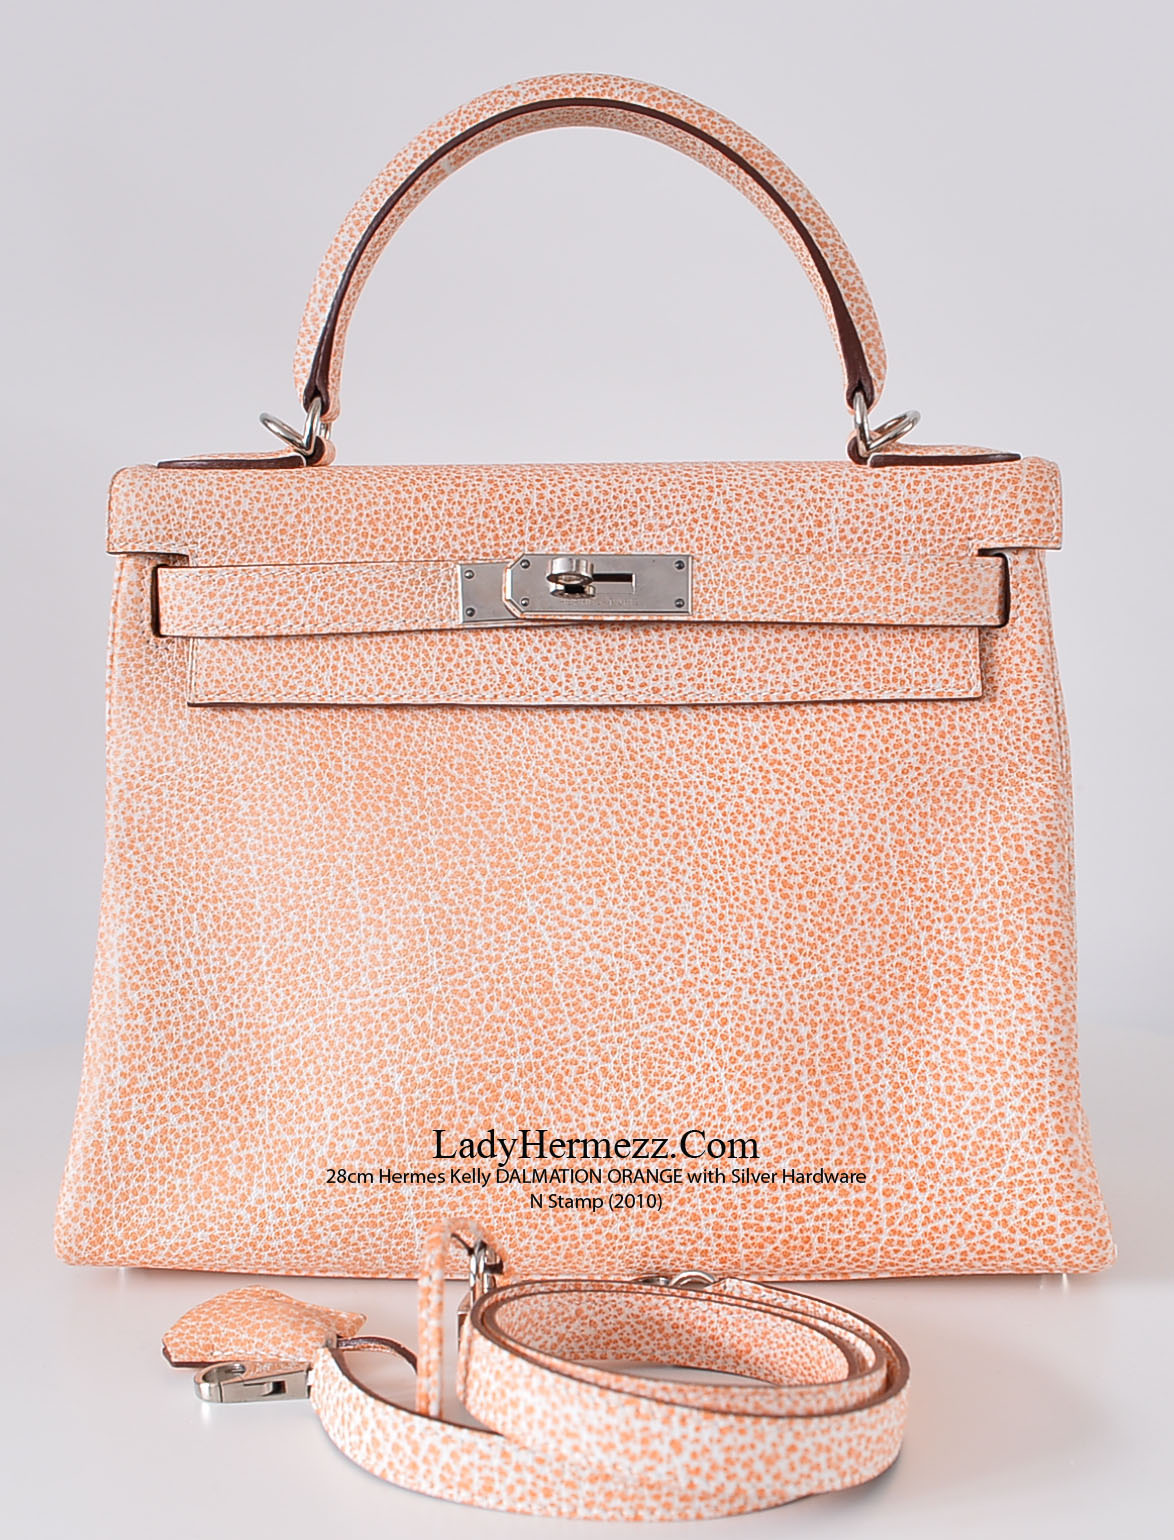 hermes kelly 28 price. 28cm hermes kelly dalmatian orange buffalo leather silver hardware n stamp (2010) our price : £15,500 28 a